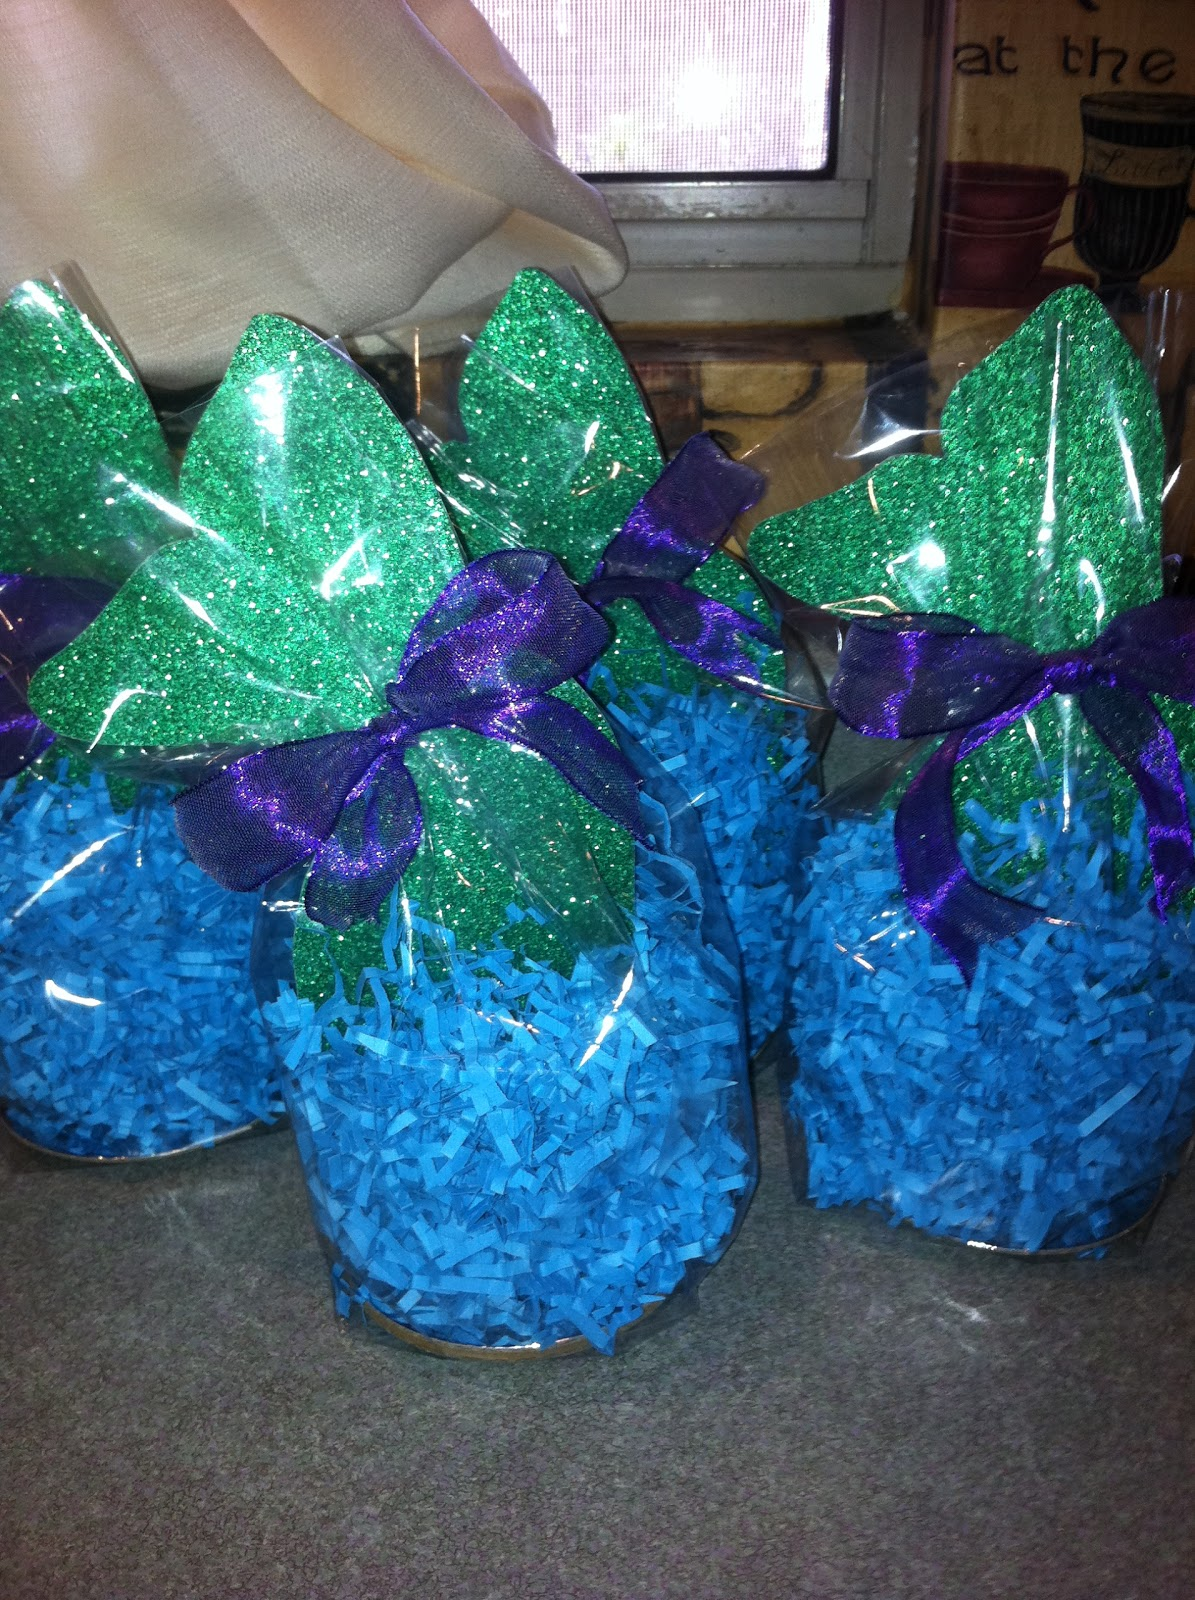 Mermaid Tail Designs Submited Images Pic2Fly